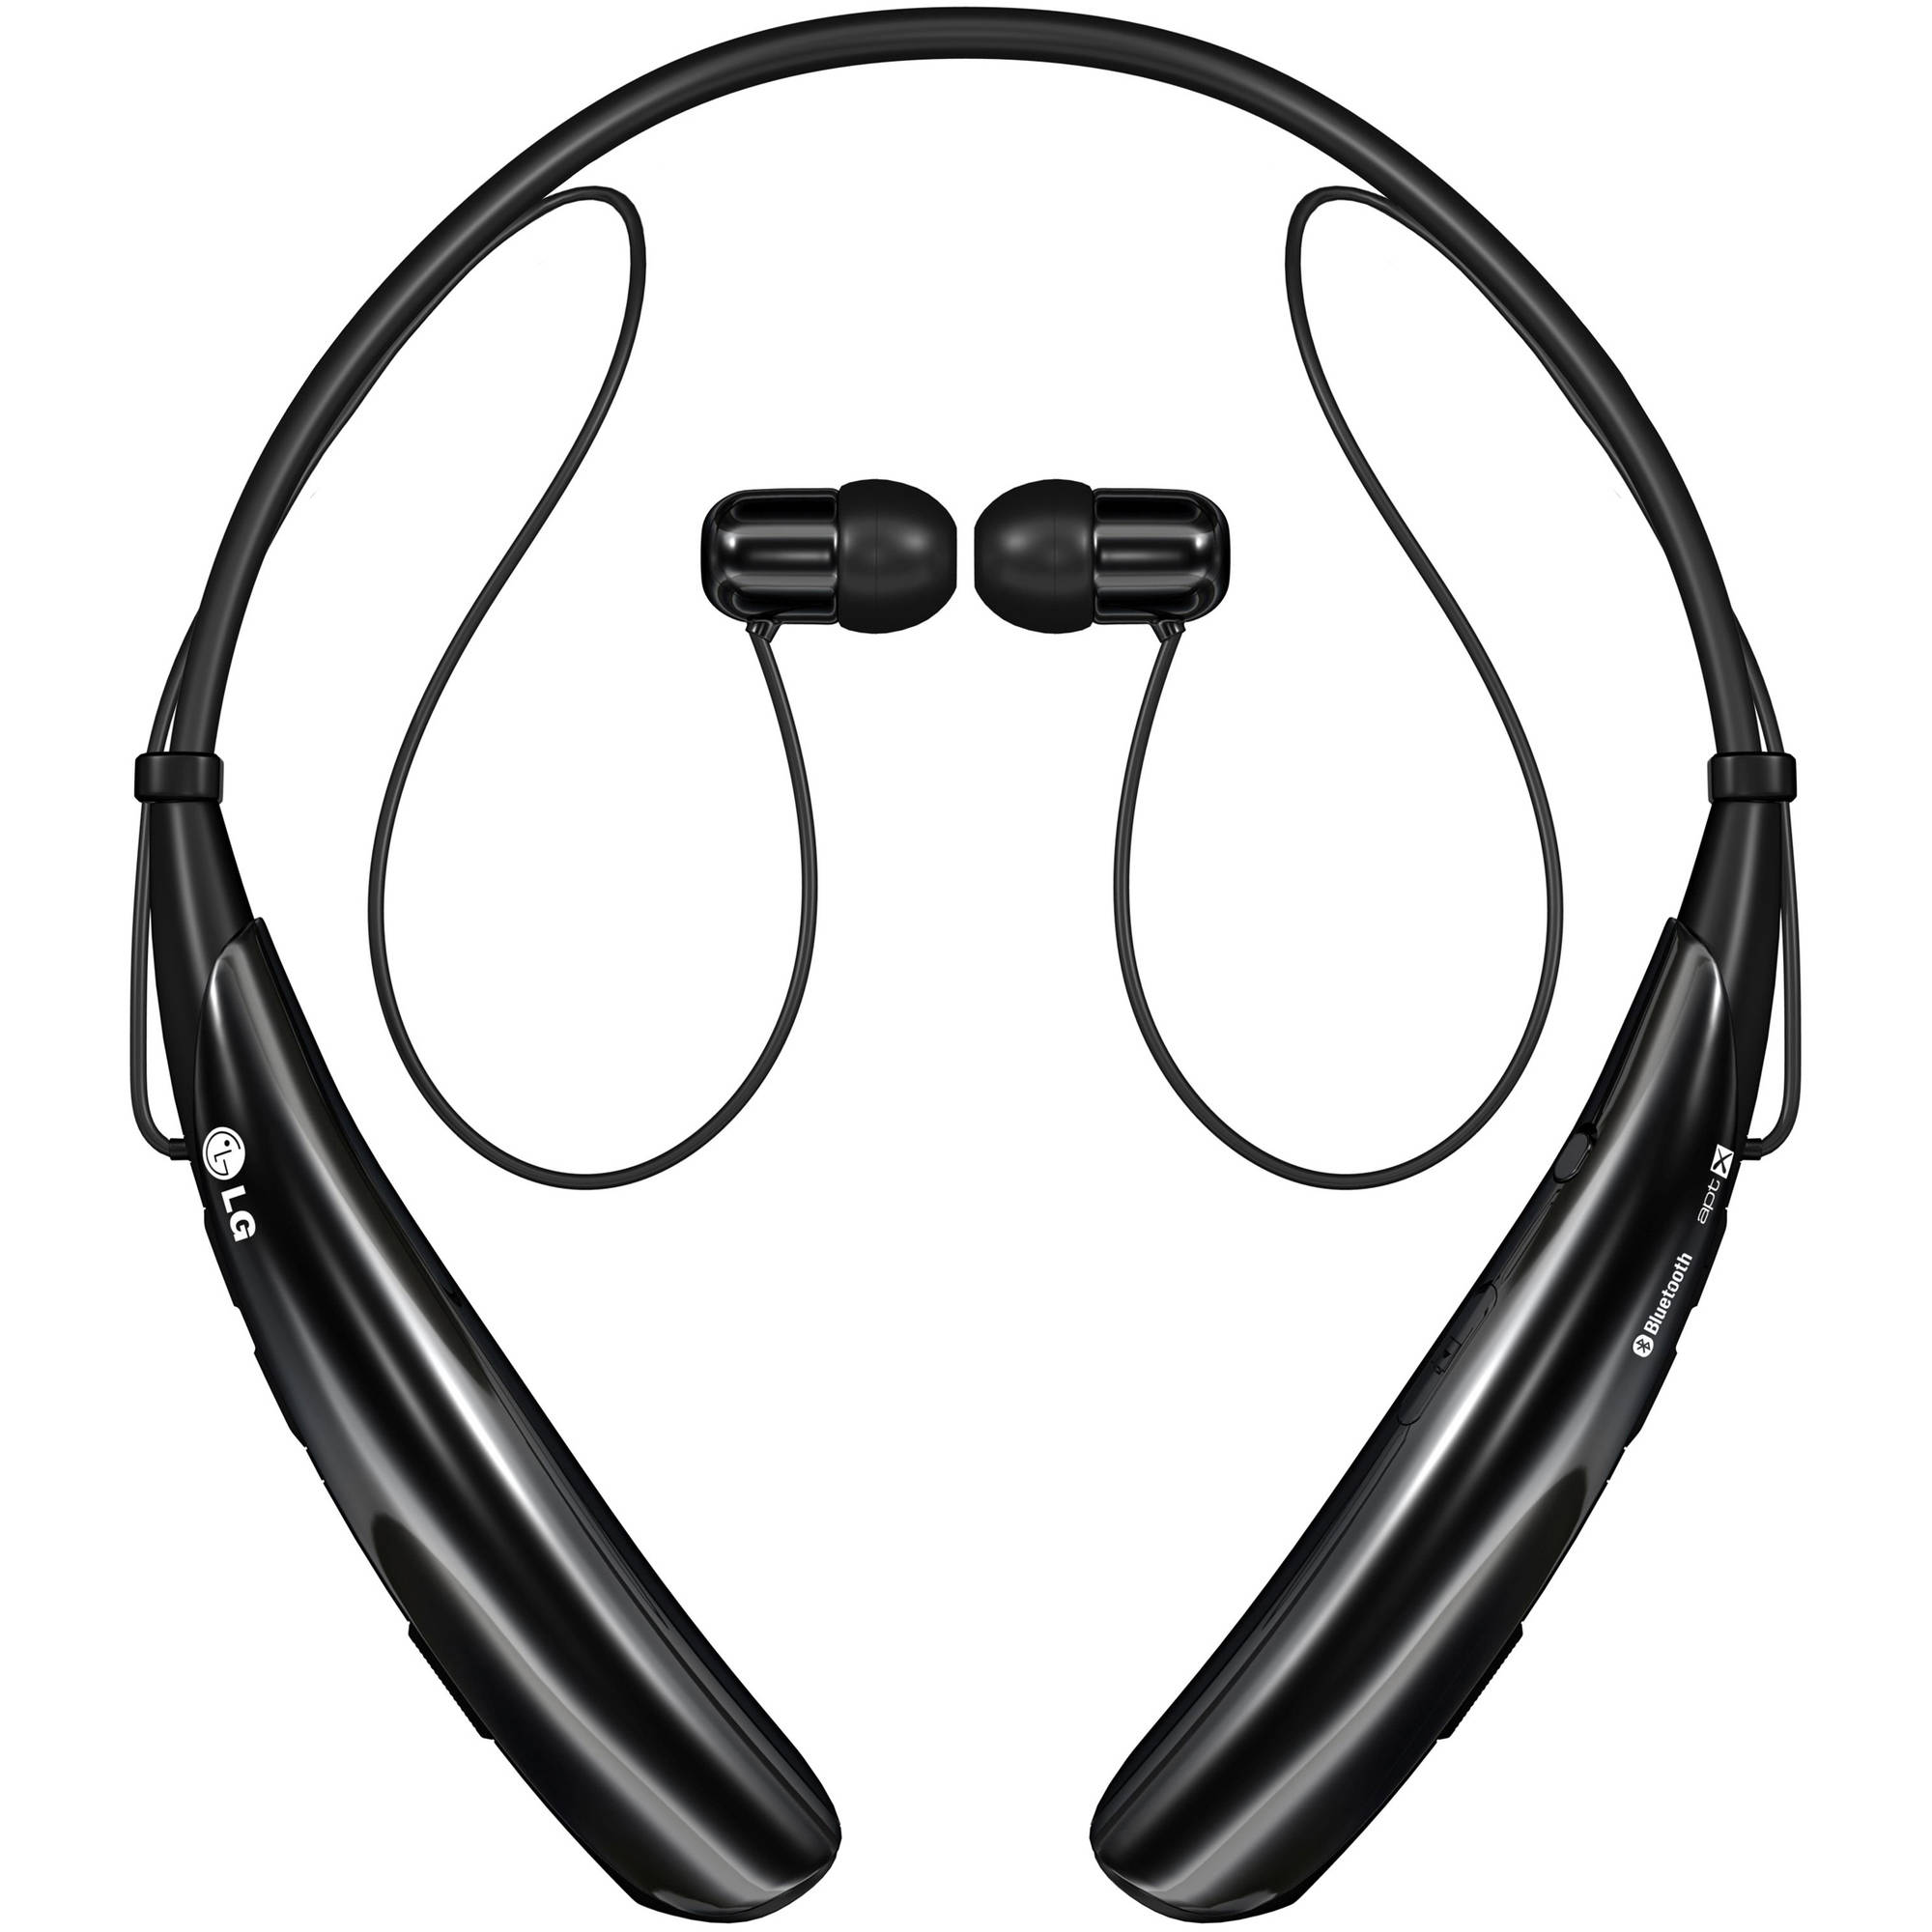 LG HBS-750 Tone+ Pro Stereo Bluetooth Headset, Black